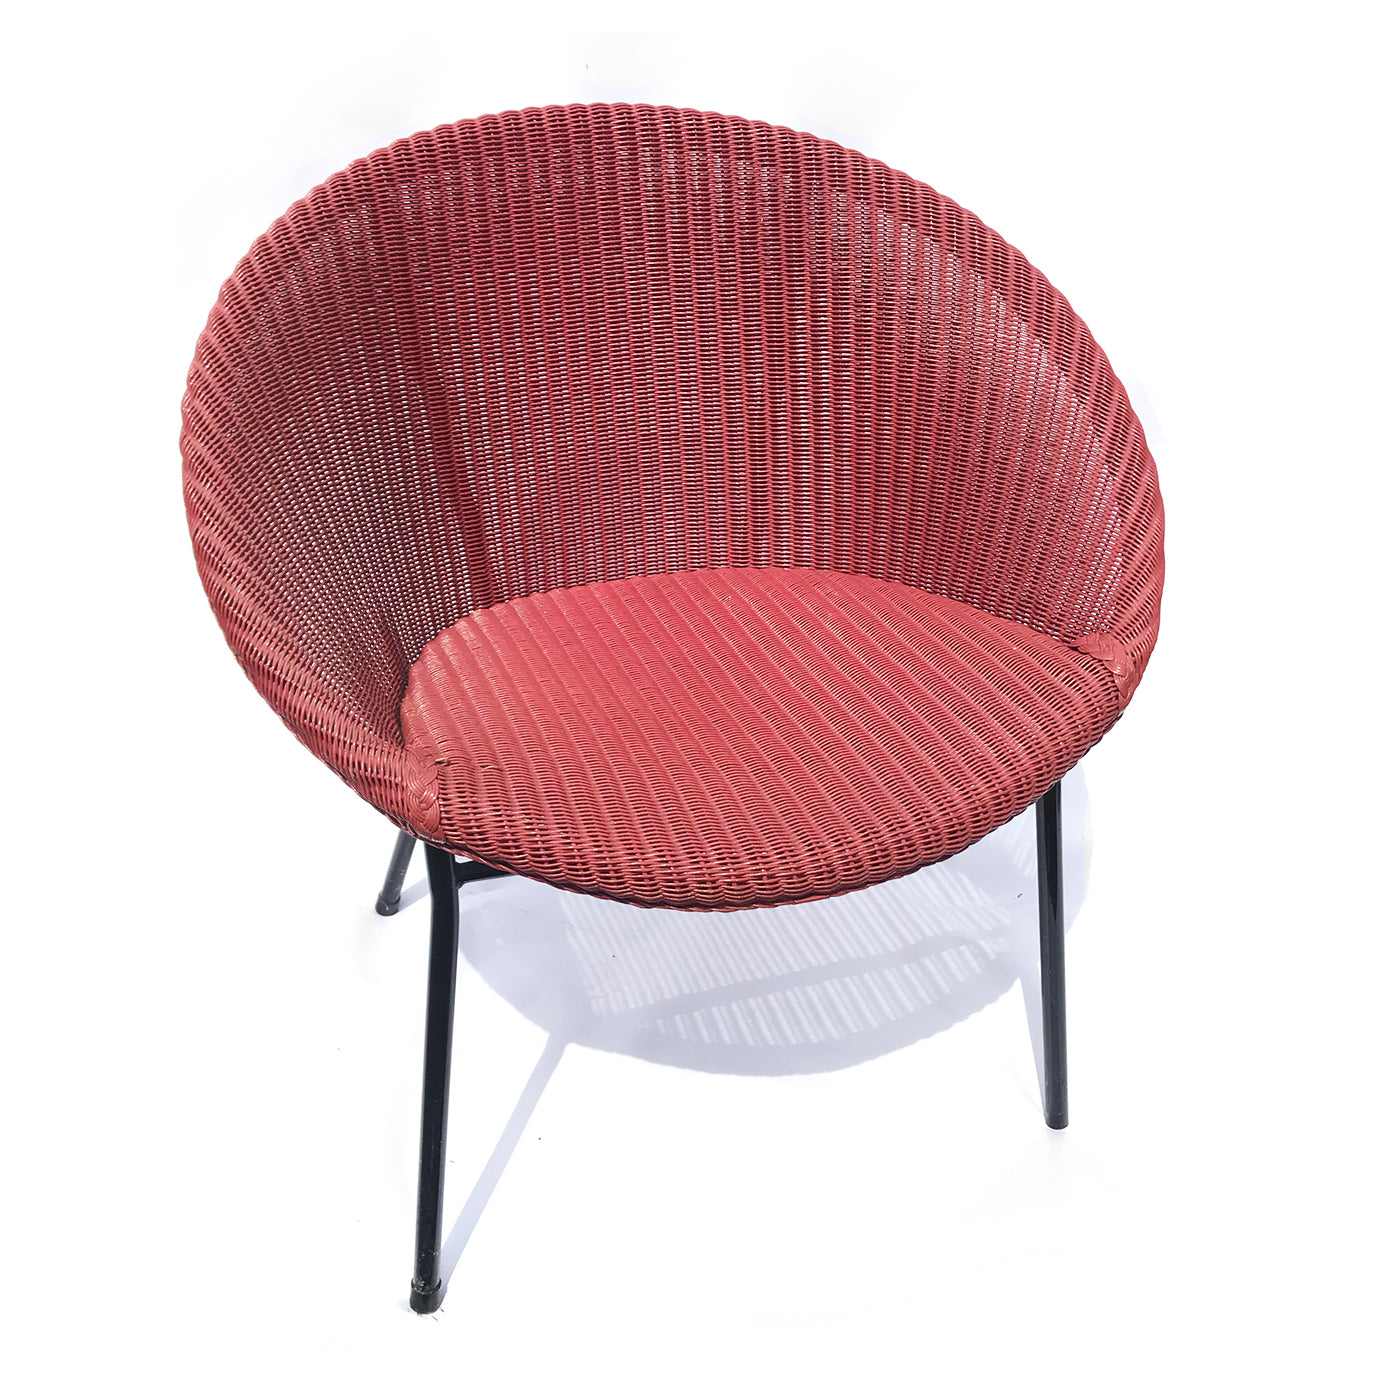 Cool LLoyd Loom Lusty Satellite Chair in its original Rhubarb colour with black metal frame - SHOP NOW - www.intovintage.co.uk